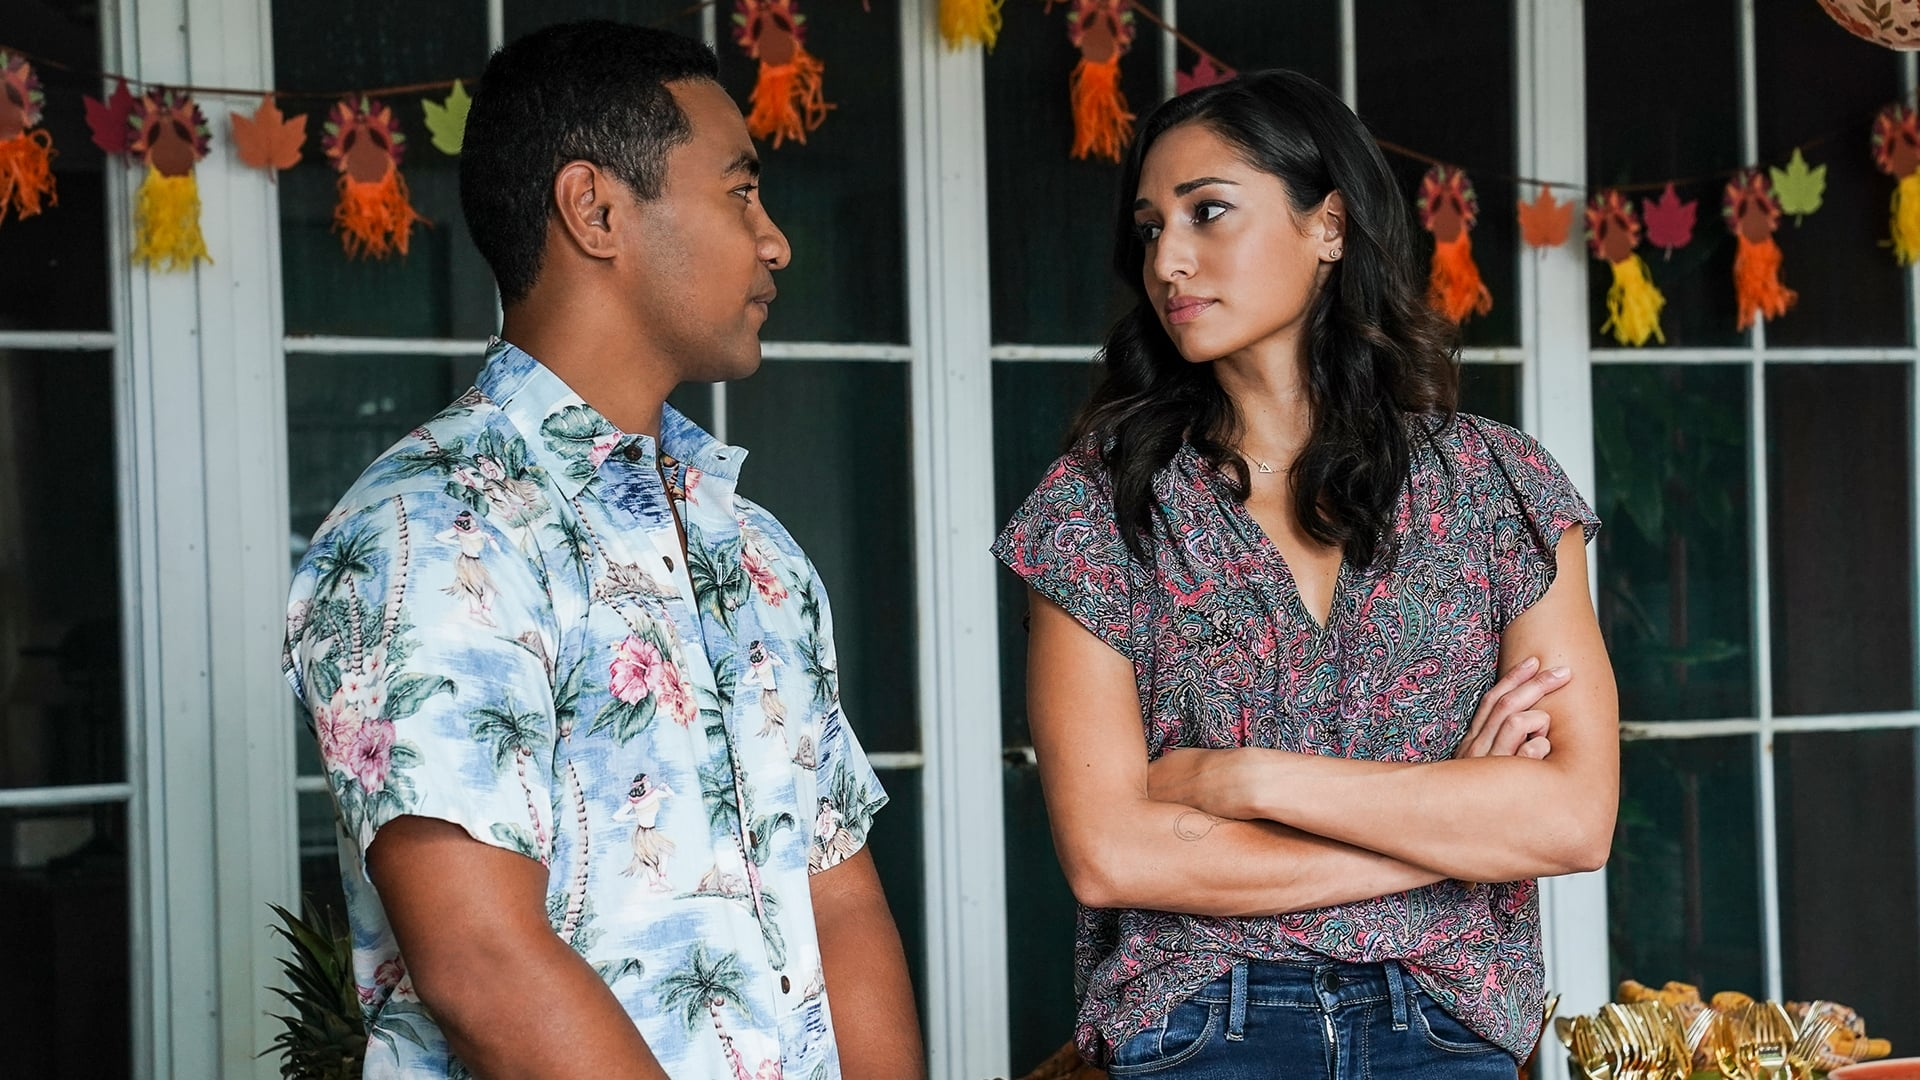 Hawaii Five-0 - Season 10 Episode 9 : Ka La'au Kumu 'ole O Kahilikolo (The Trunkless Tree of Kahilikolo)